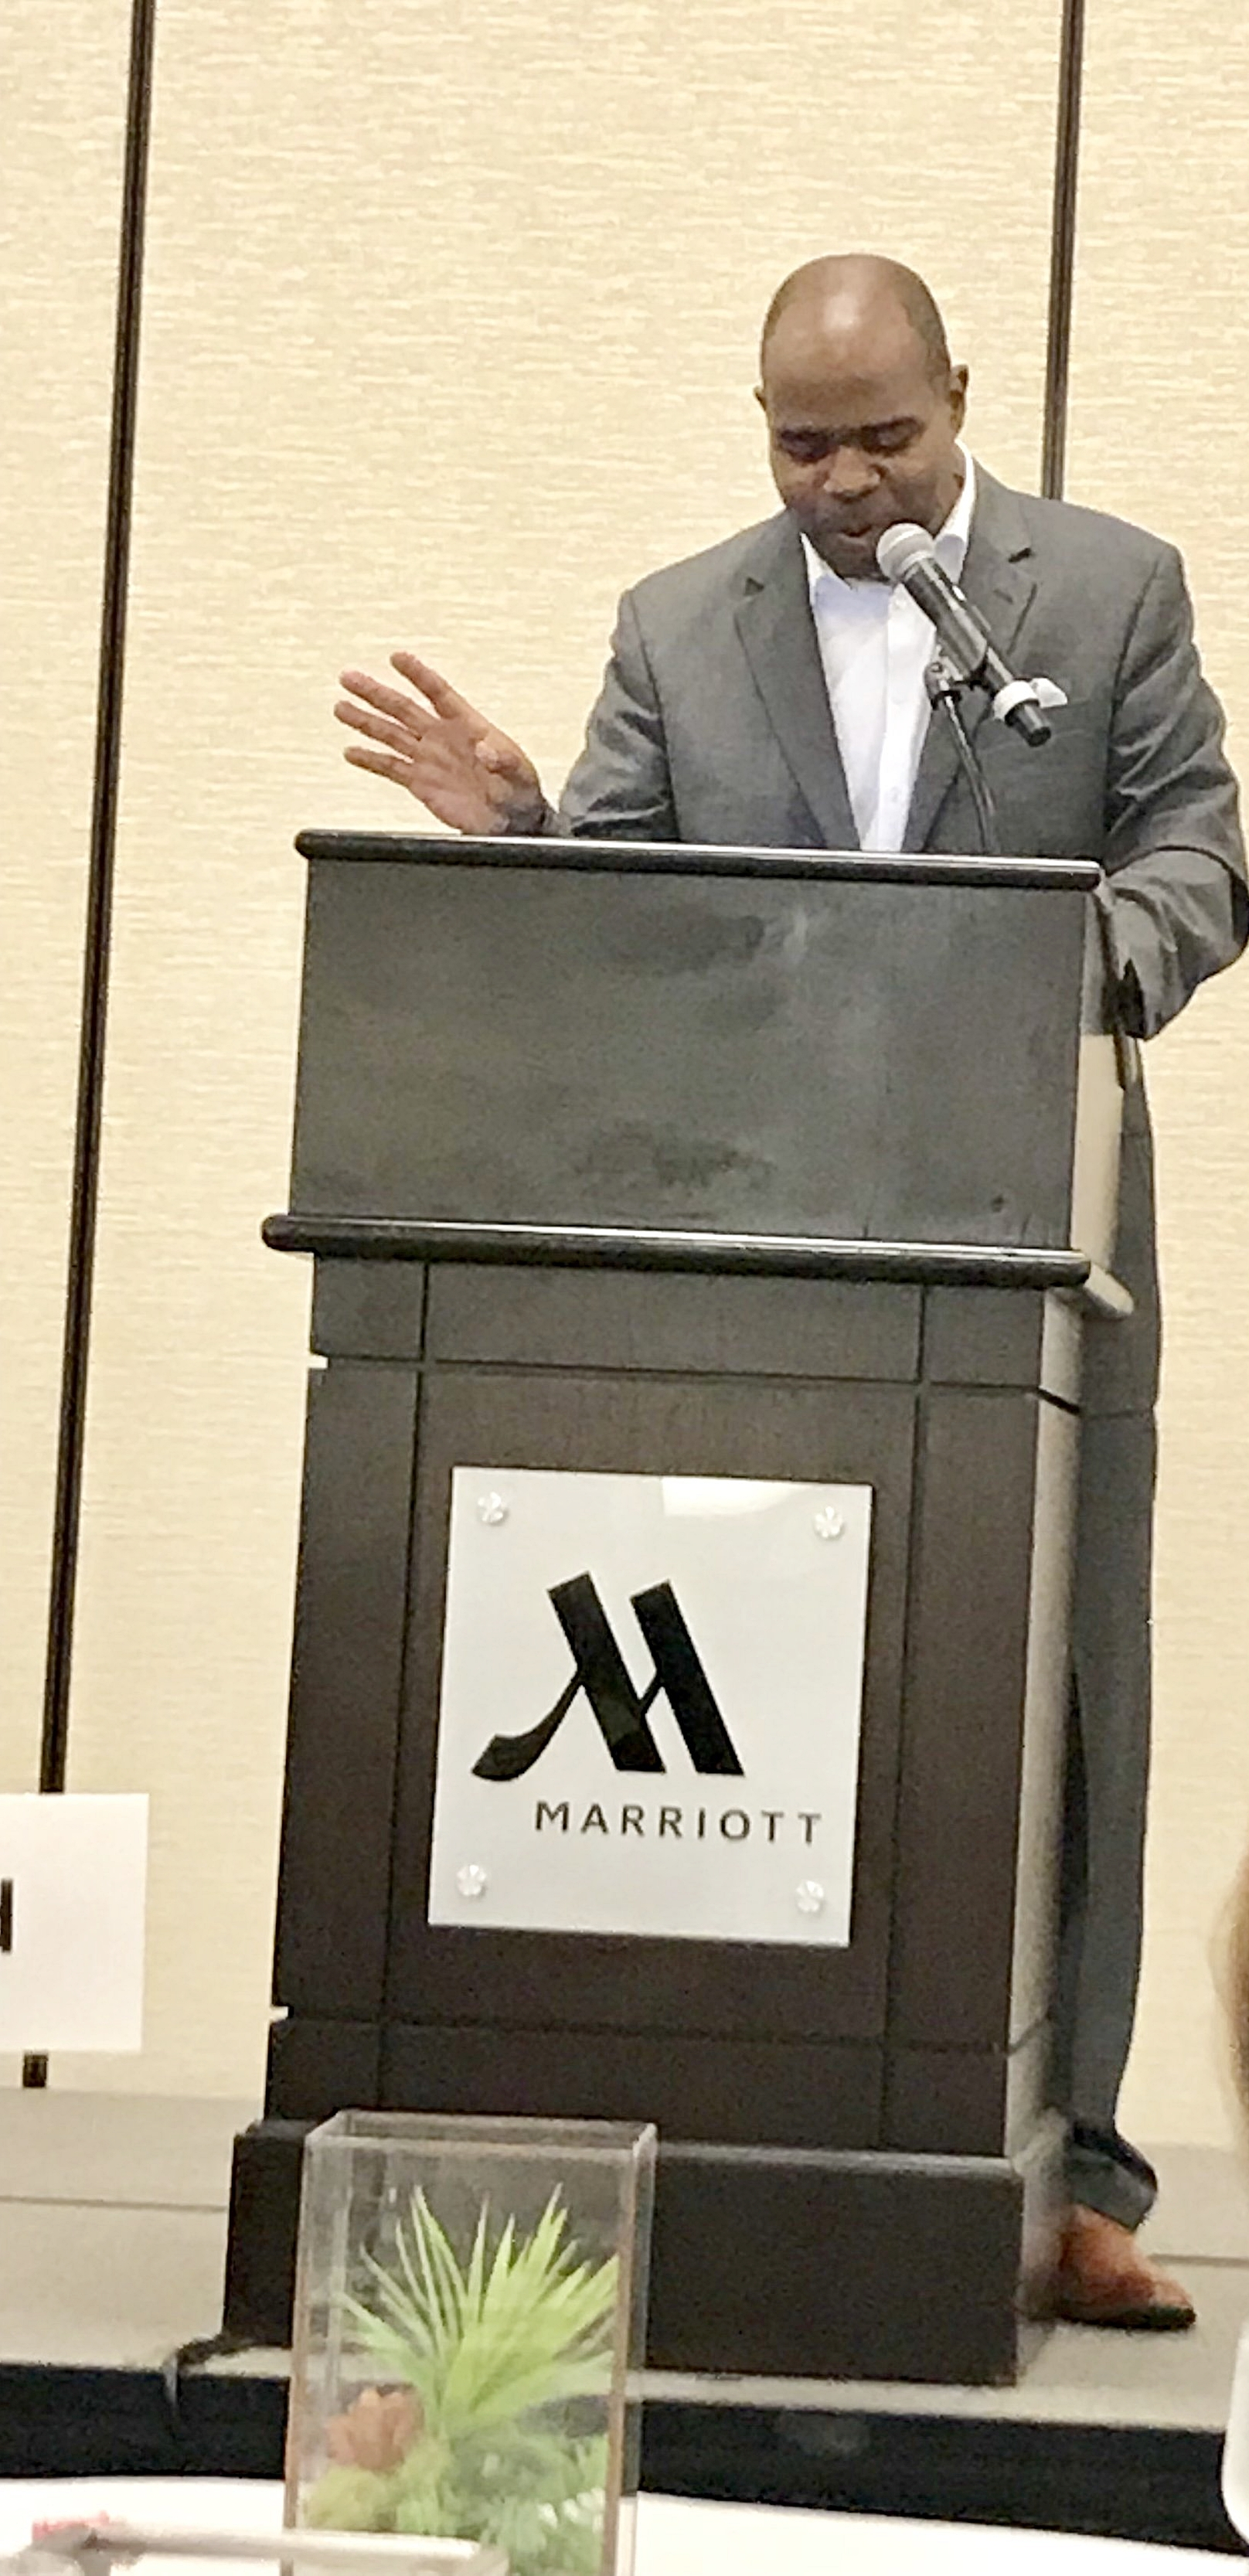 Speaking about Hotel Site Selection & Partnerships for a Successful Event! @MarriottNewportBeach